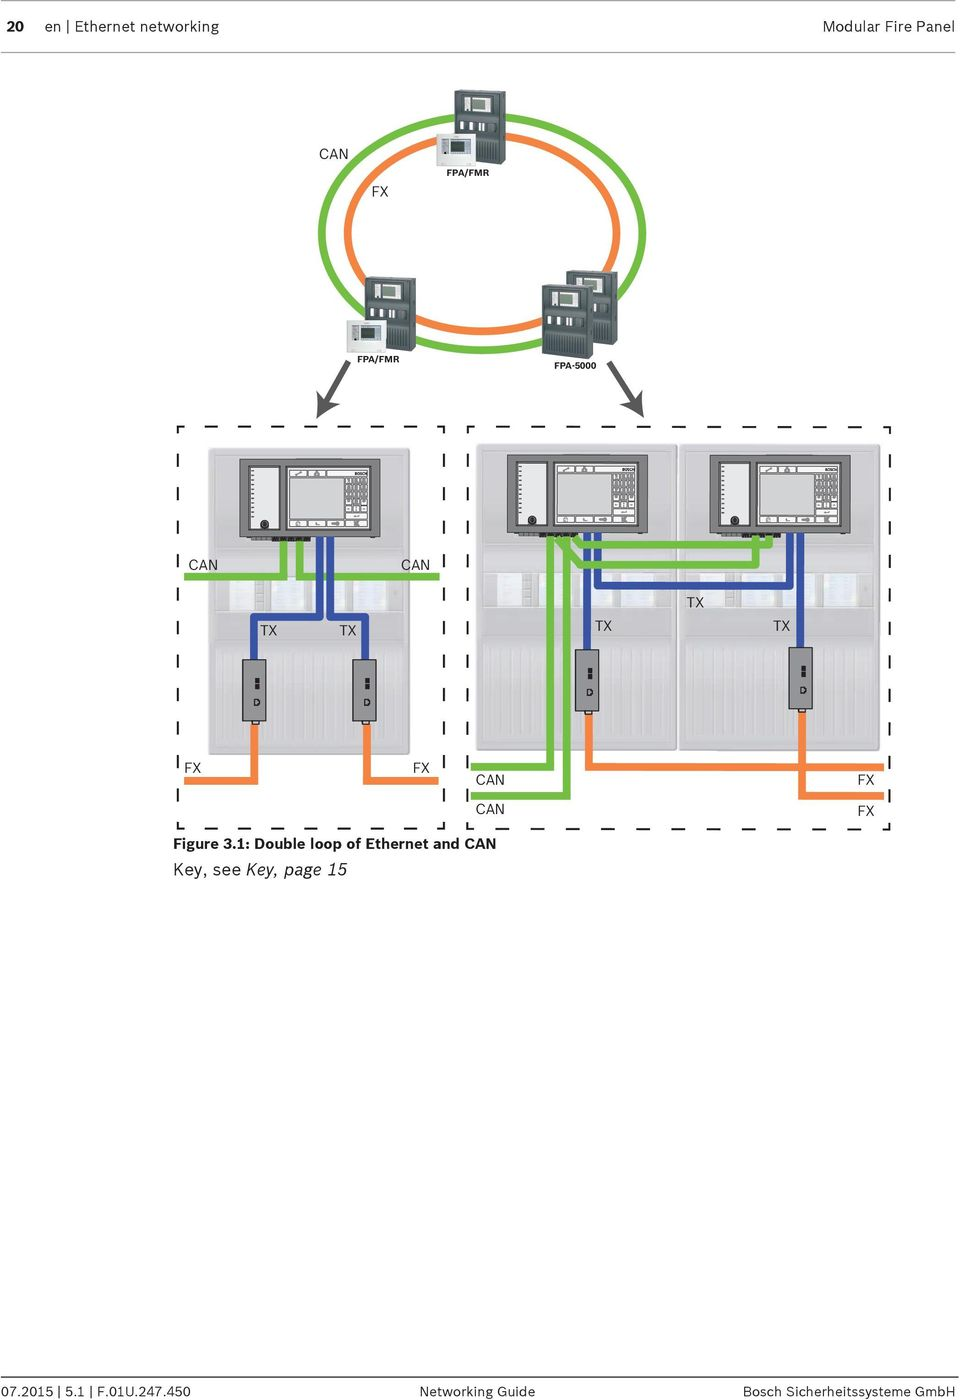 1: Double loop of Ethernet and CAN Key, see Key, page 15